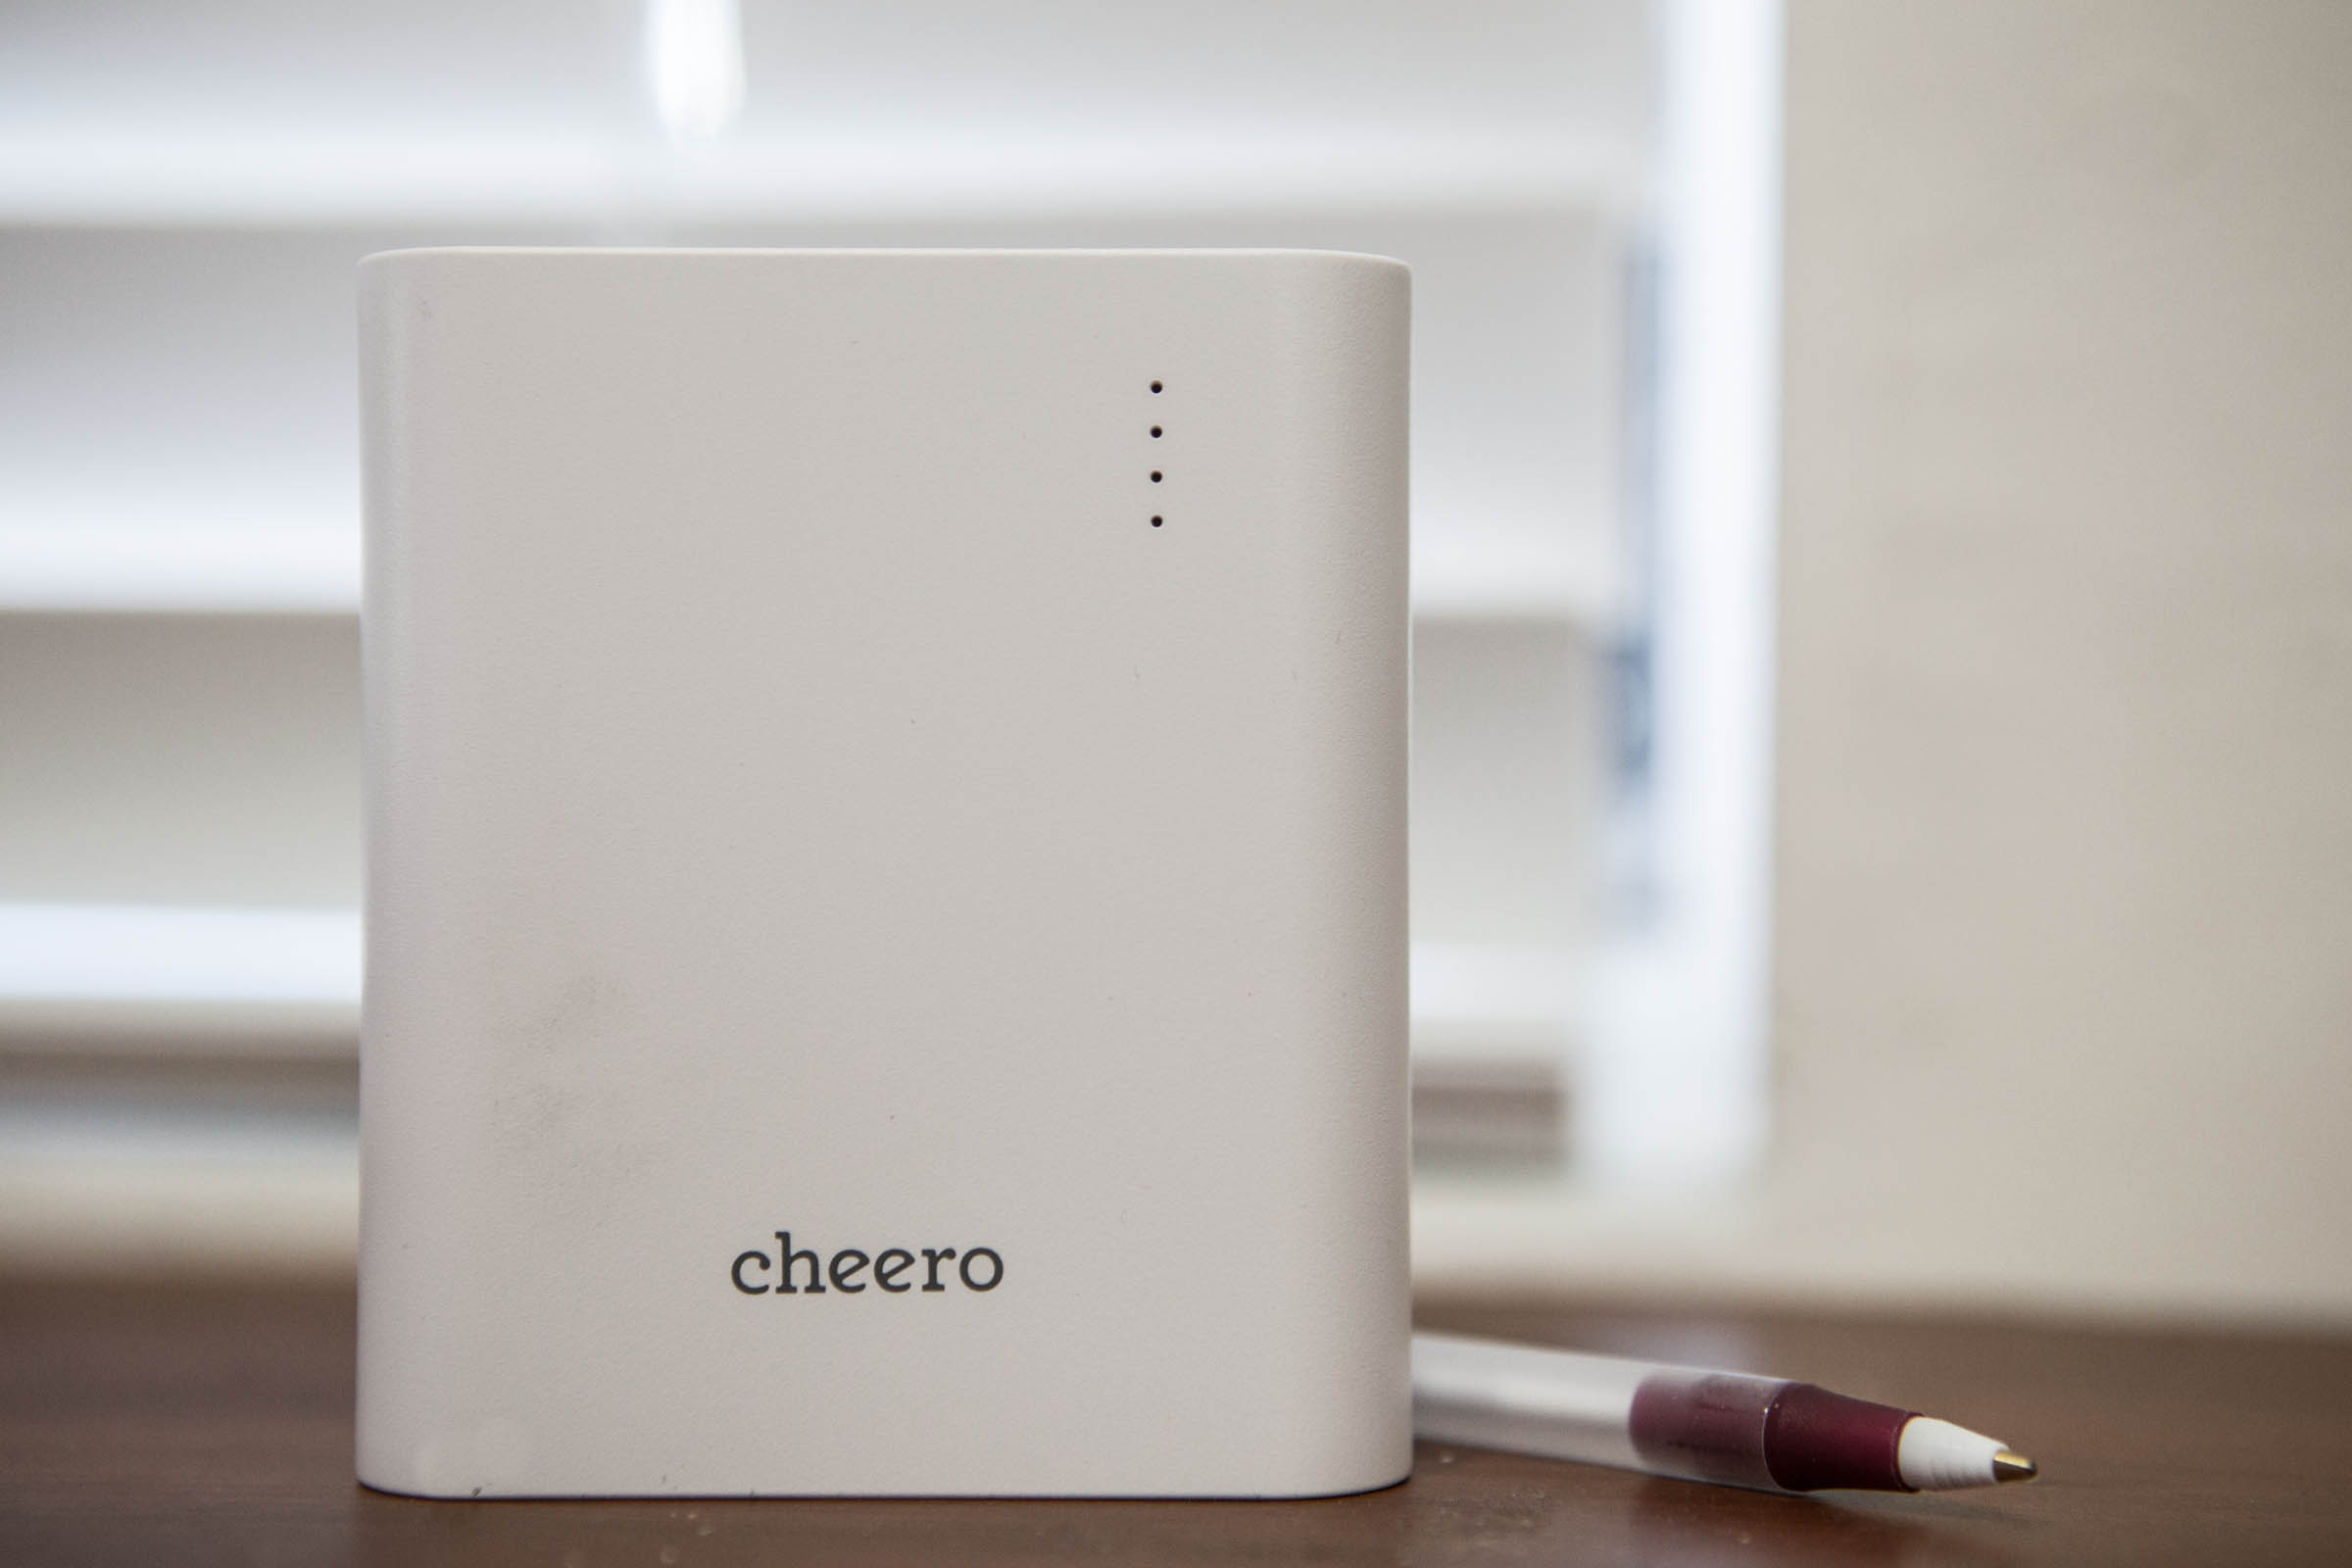 cheero pp3 usb battery